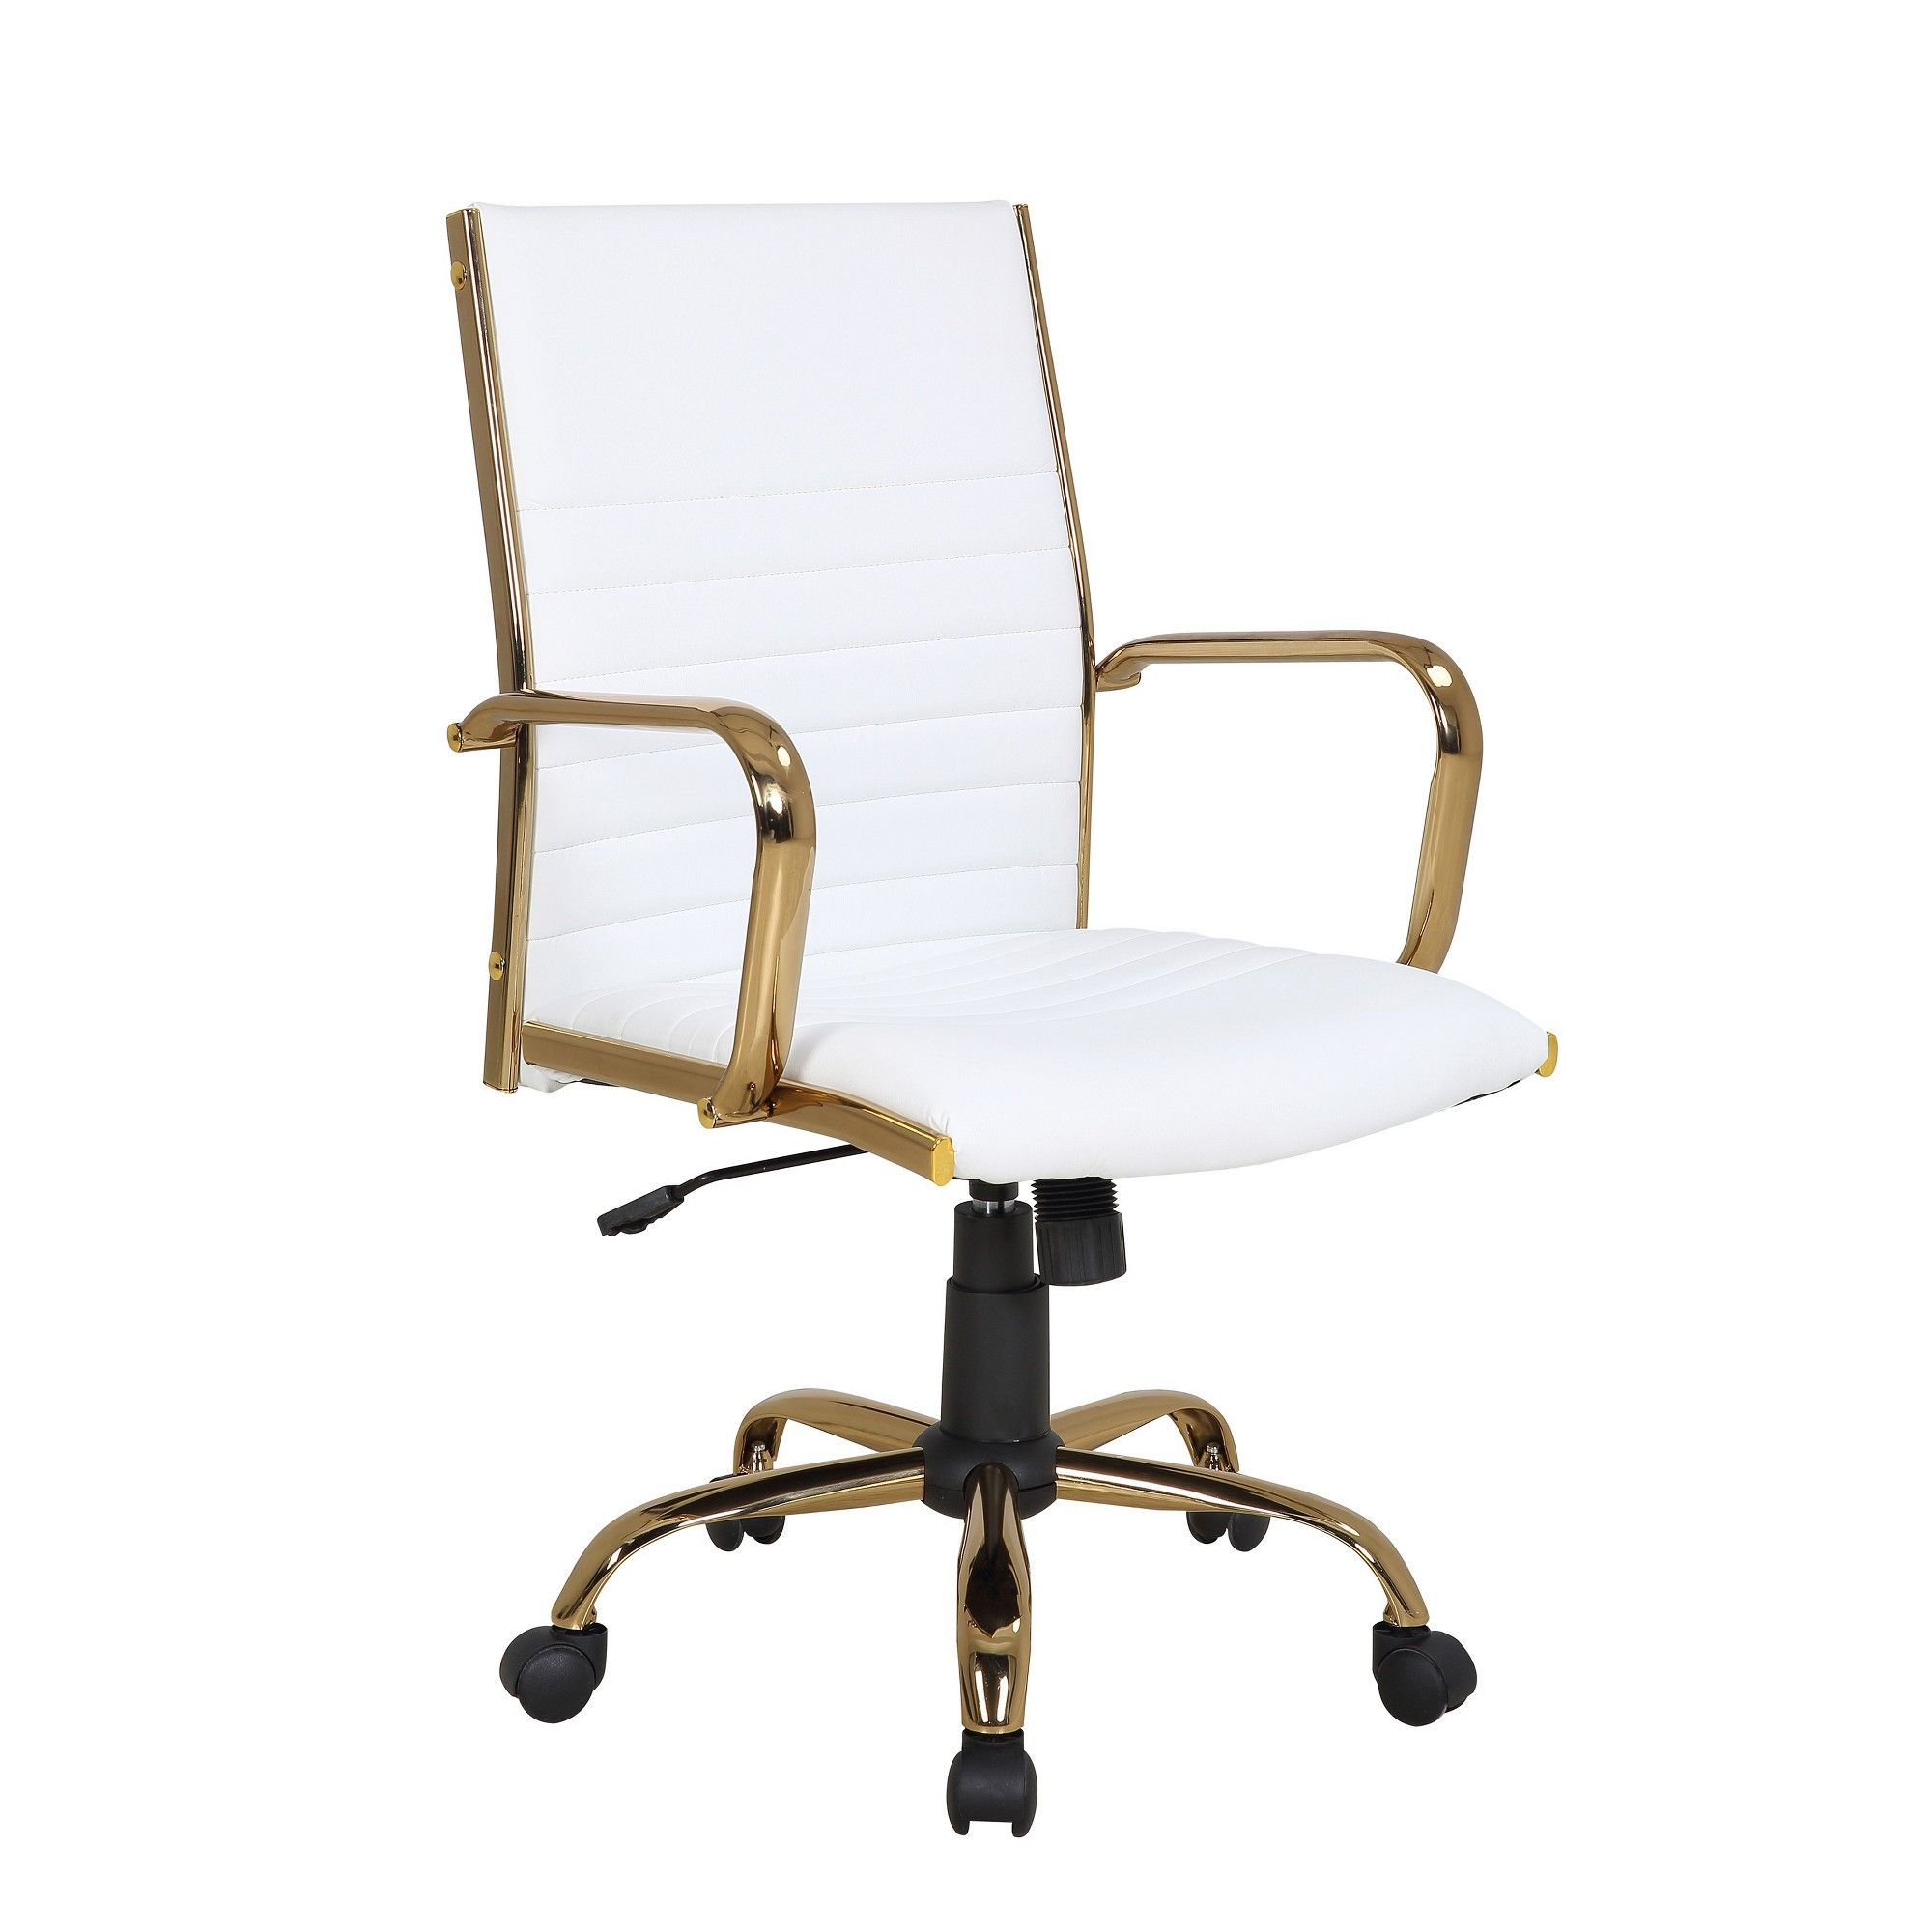 Master Contemporary Office Chair White Gold Lumisource Adjustable Office Chair Contemporary Office Chairs Office Chair